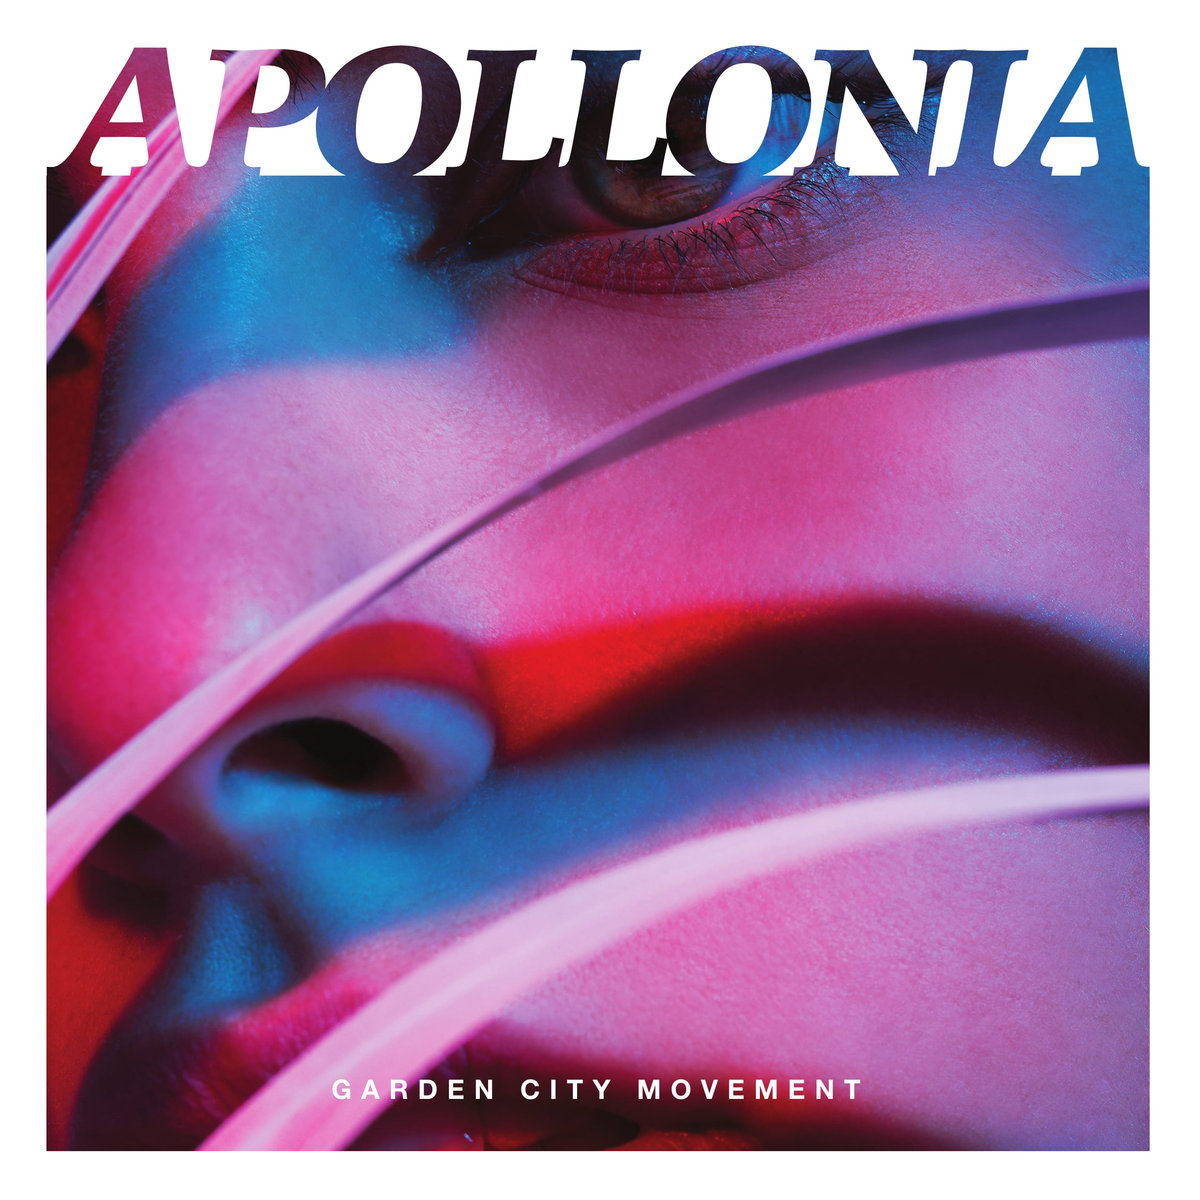 DYLTS - Garden CIty Movement - A Bitter Moon - Apollonia